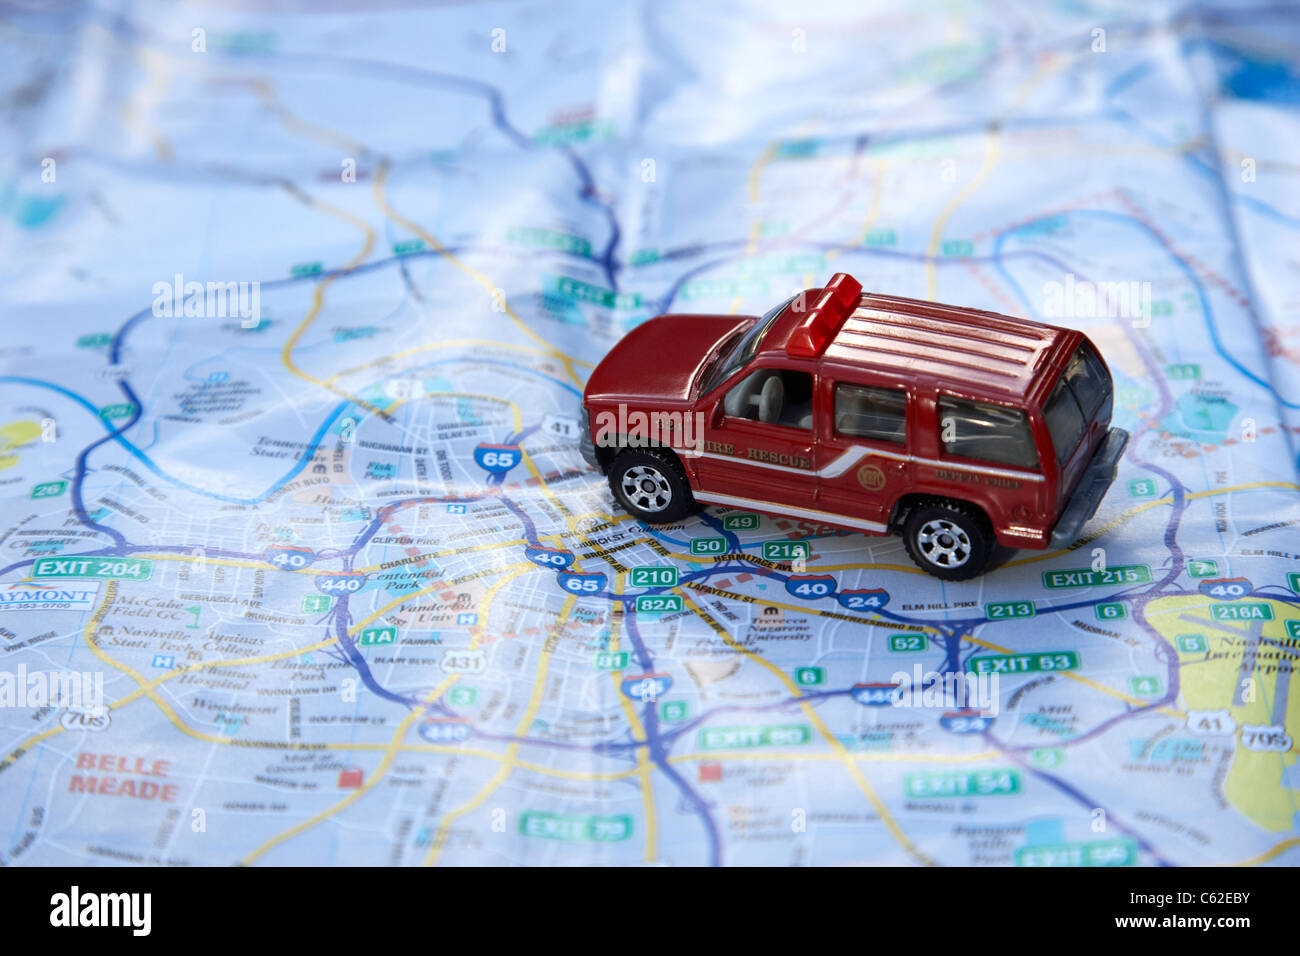 model fire rescue suv on a city map of nashville in the usa - Stock Image